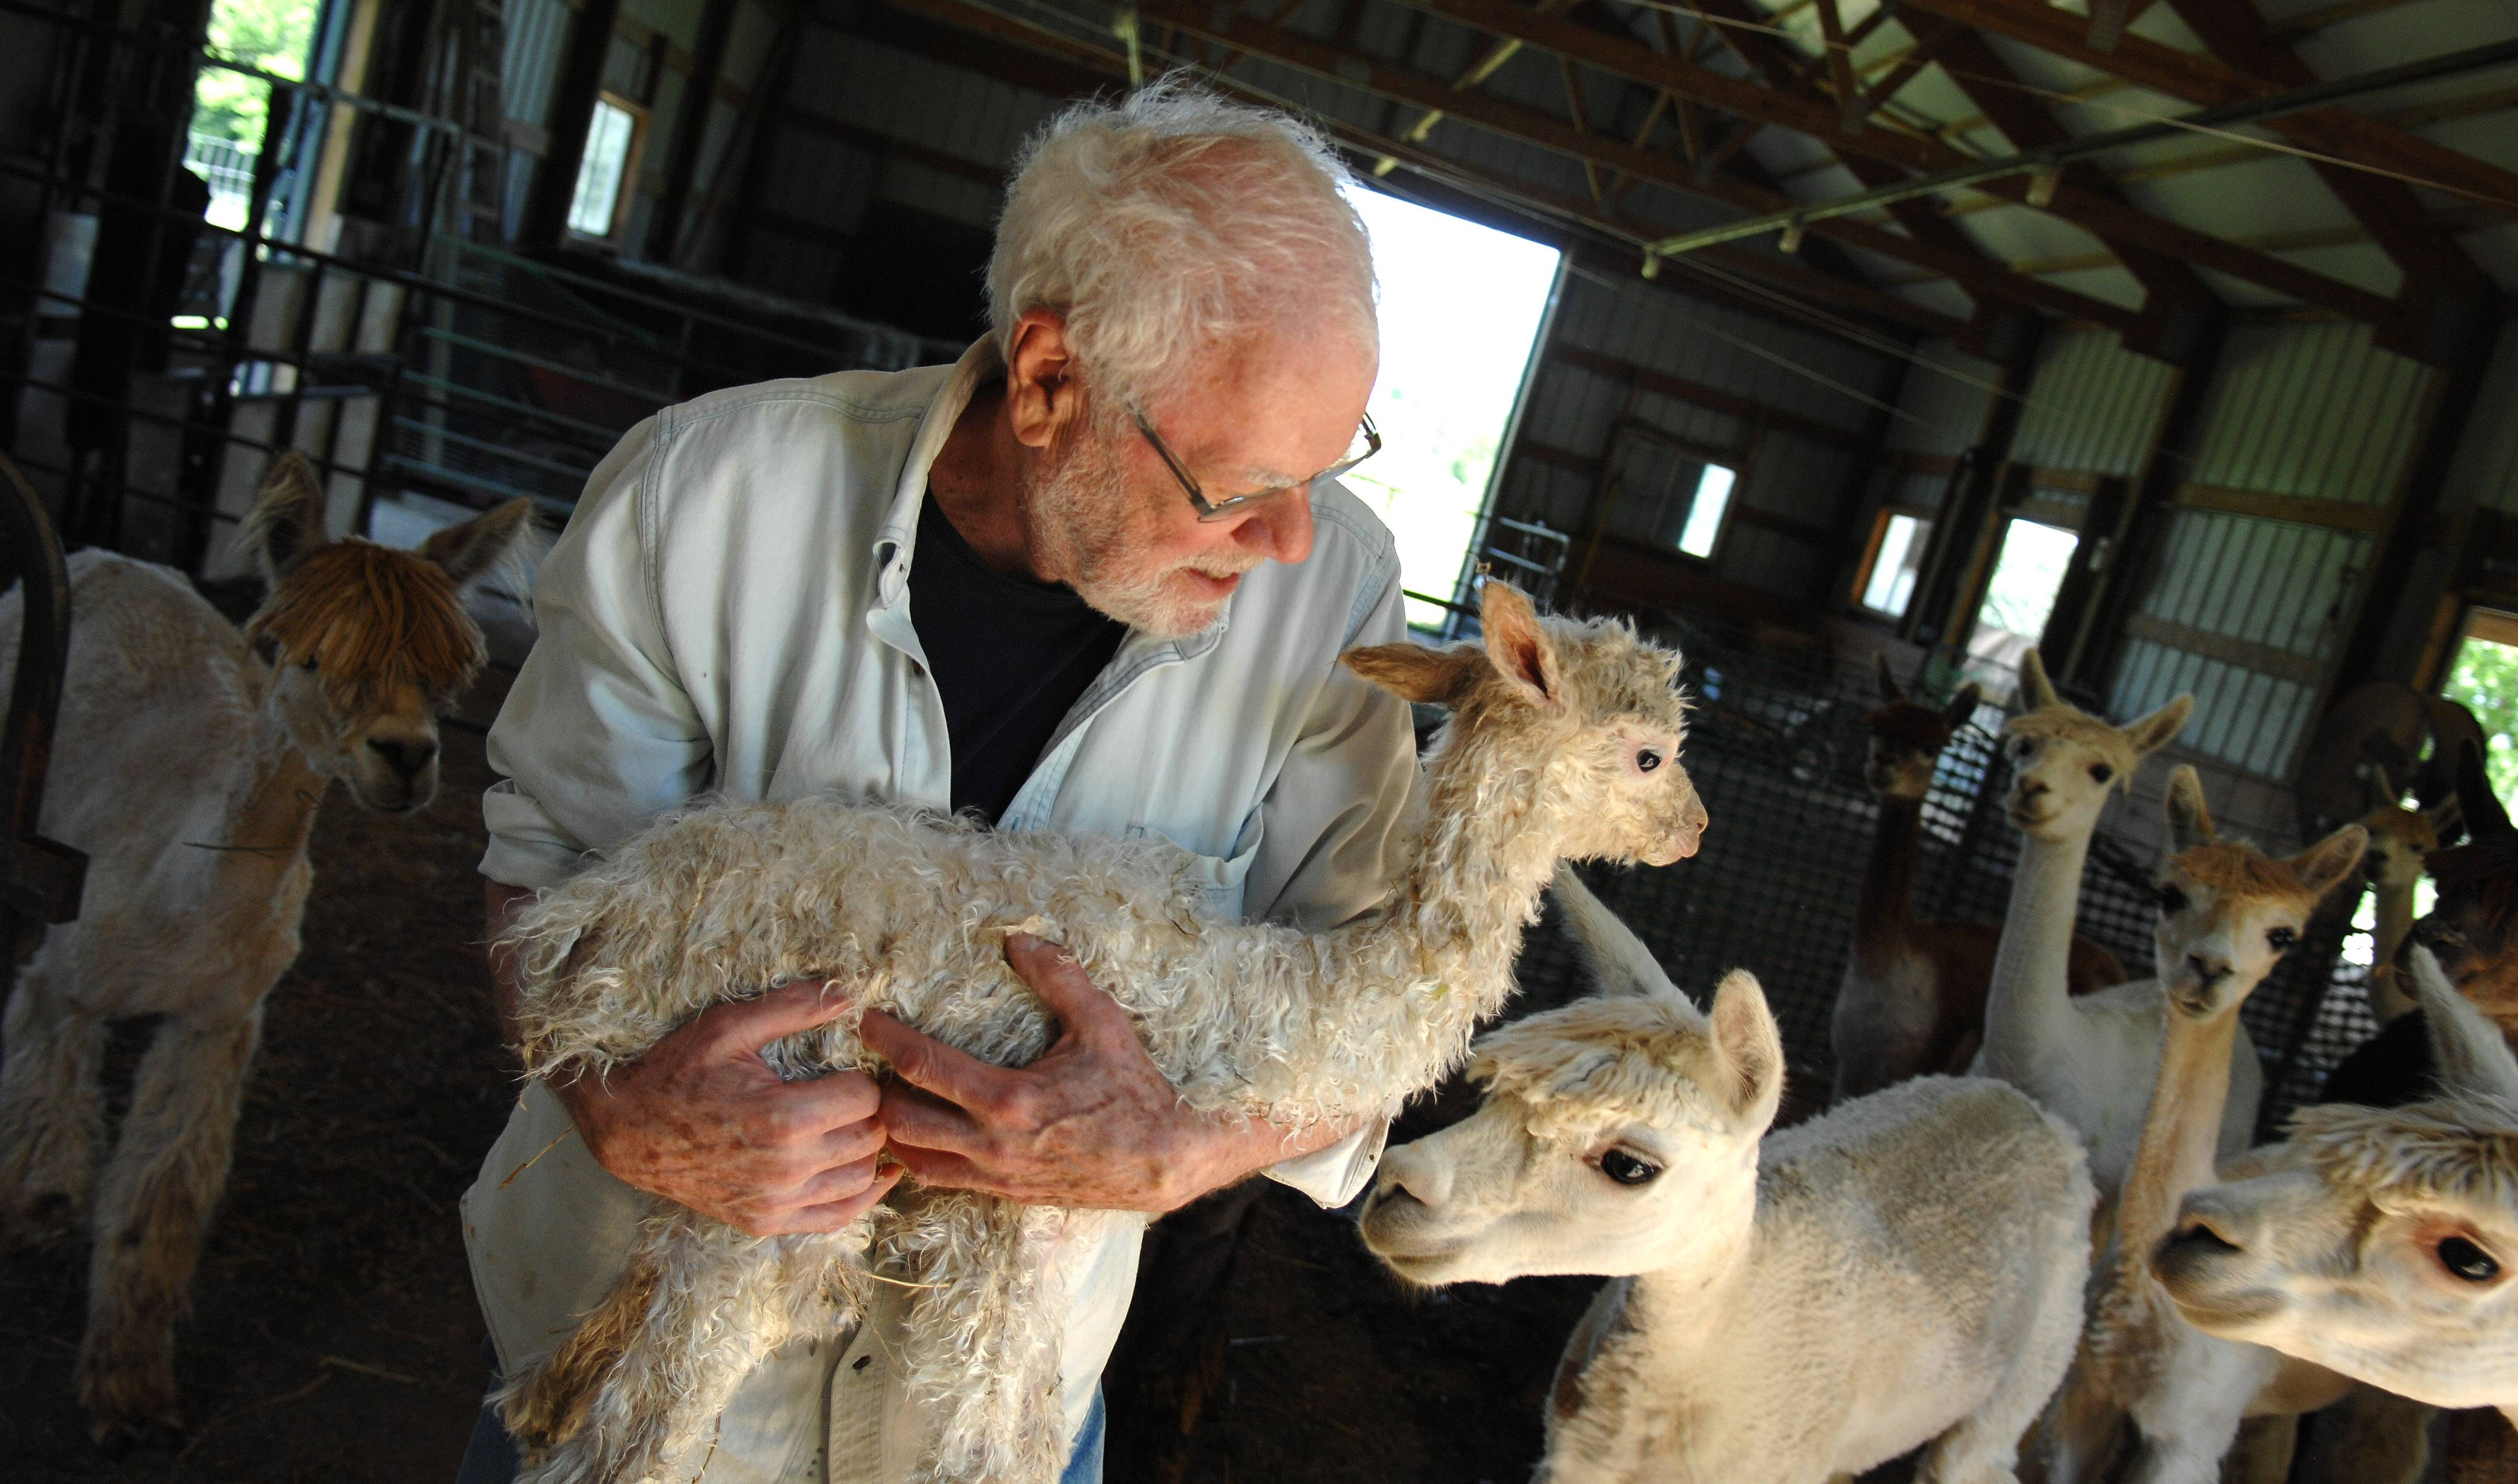 Ron Waldron of Waldron Grove Alpaca Farm carries a new baby out of the barn. The Elgin/Campton Hills area farm will be open to visitors this weekend.